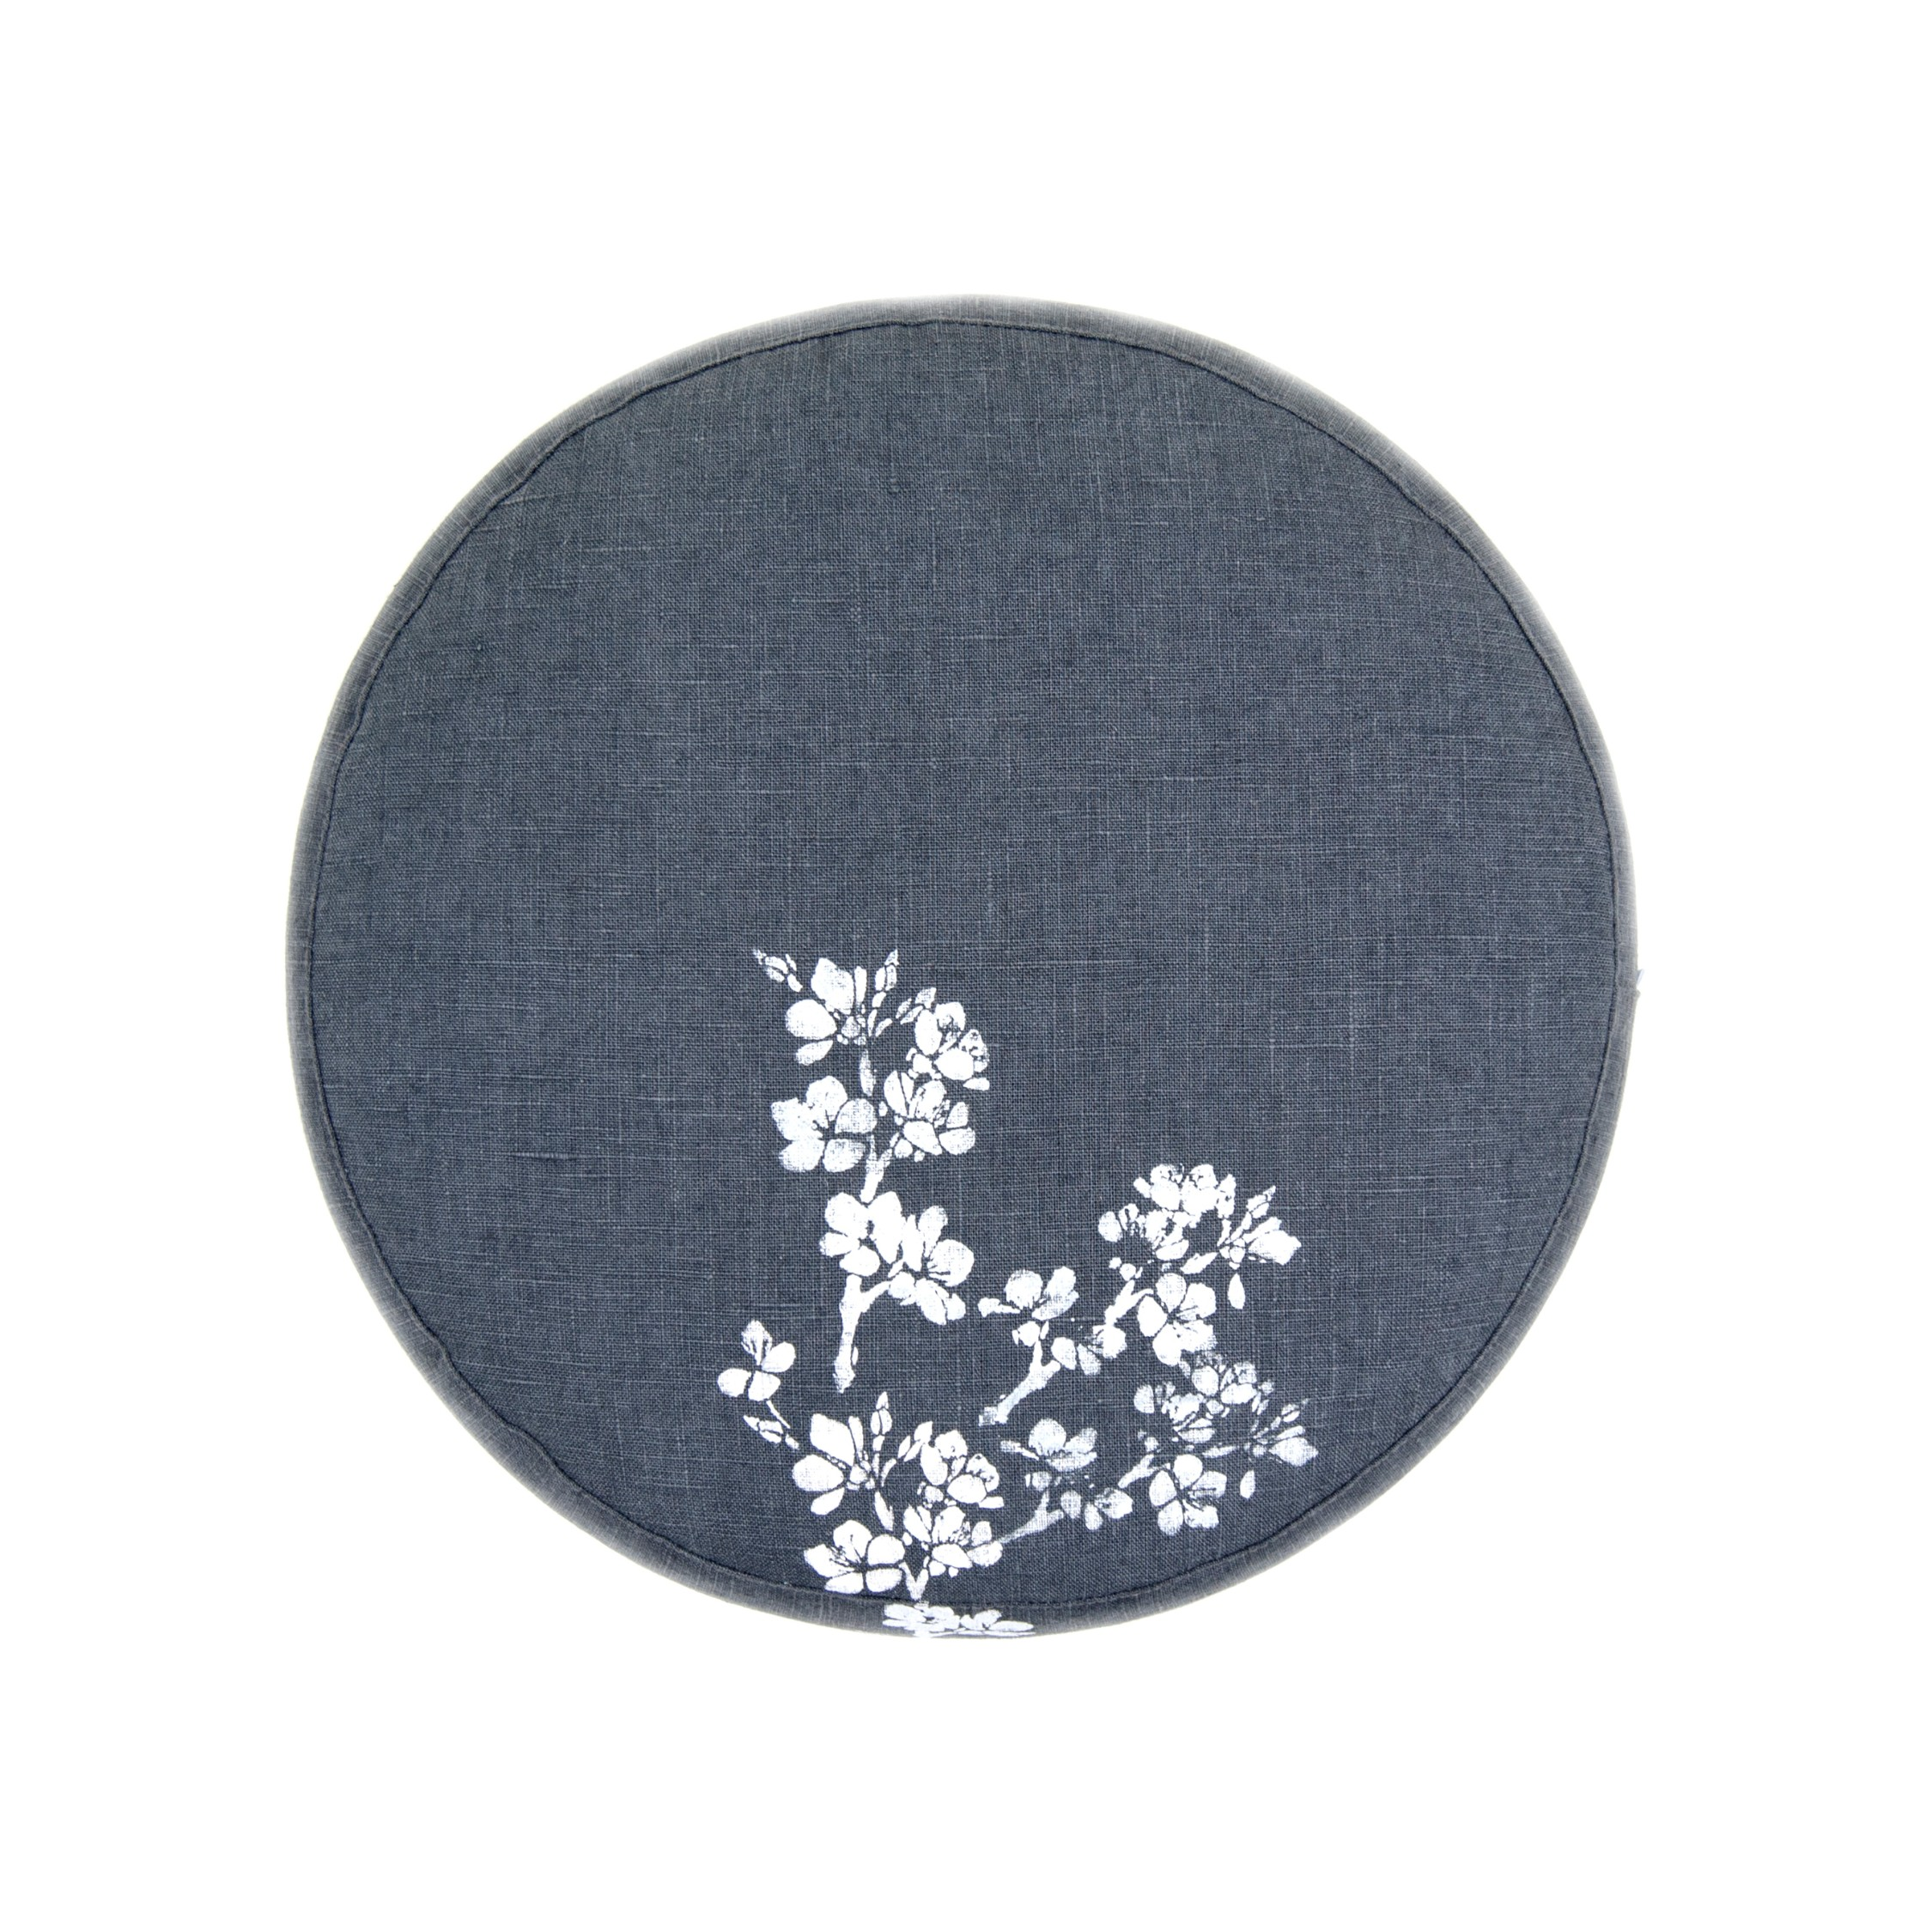 Top of the Cherry Blossom meditation cushion by Pure Prana Label